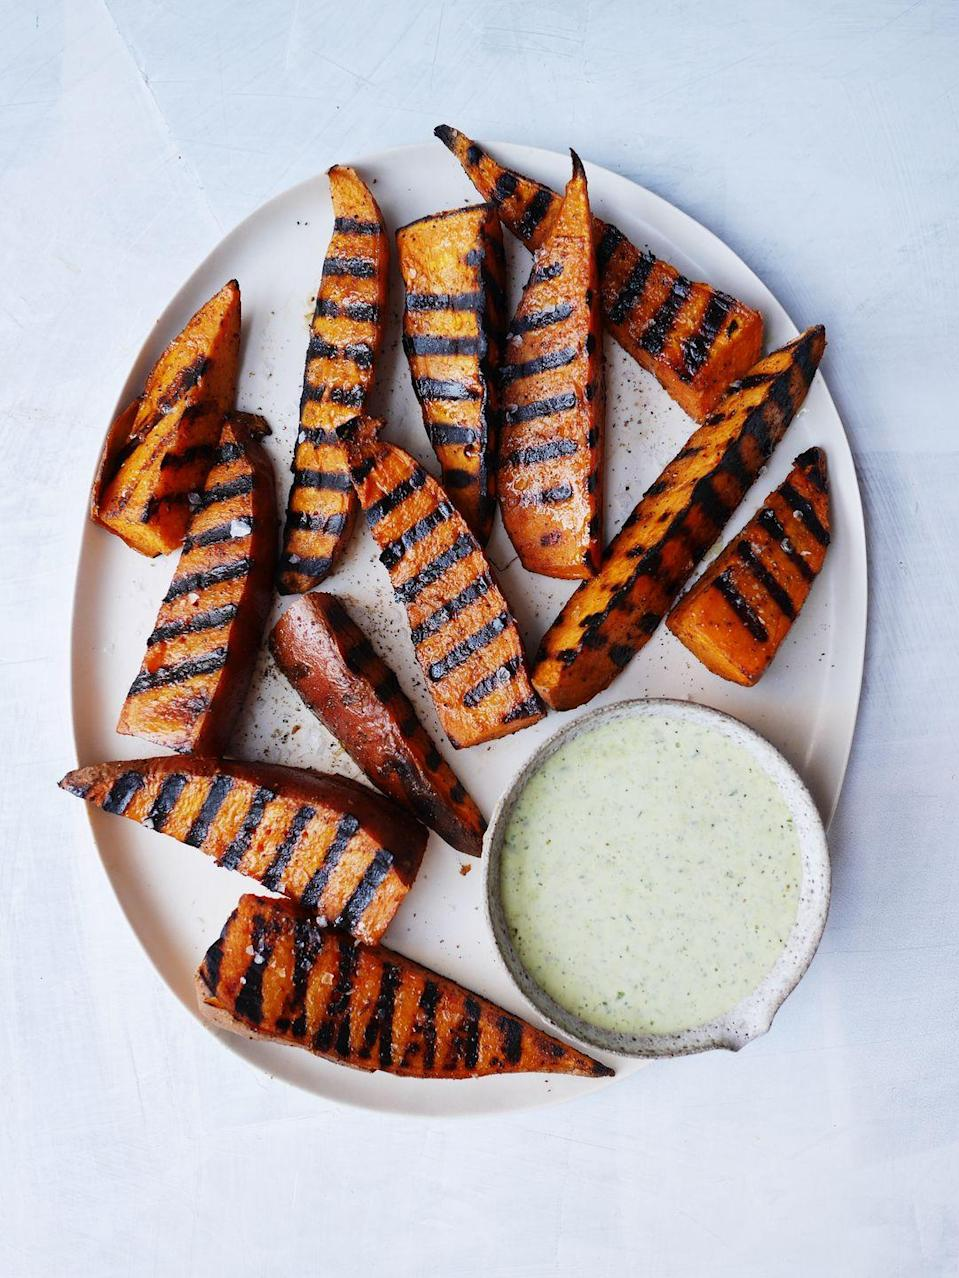 """<p>These sweet potato wedges are STURDY.</p><p>Get the recipe from <a href=""""https://www.delish.com/cooking/recipe-ideas/a21087533/easy-grilled-sweet-potatoes-recipe/"""" rel=""""nofollow noopener"""" target=""""_blank"""" data-ylk=""""slk:Delish"""" class=""""link rapid-noclick-resp"""">Delish</a>. </p>"""